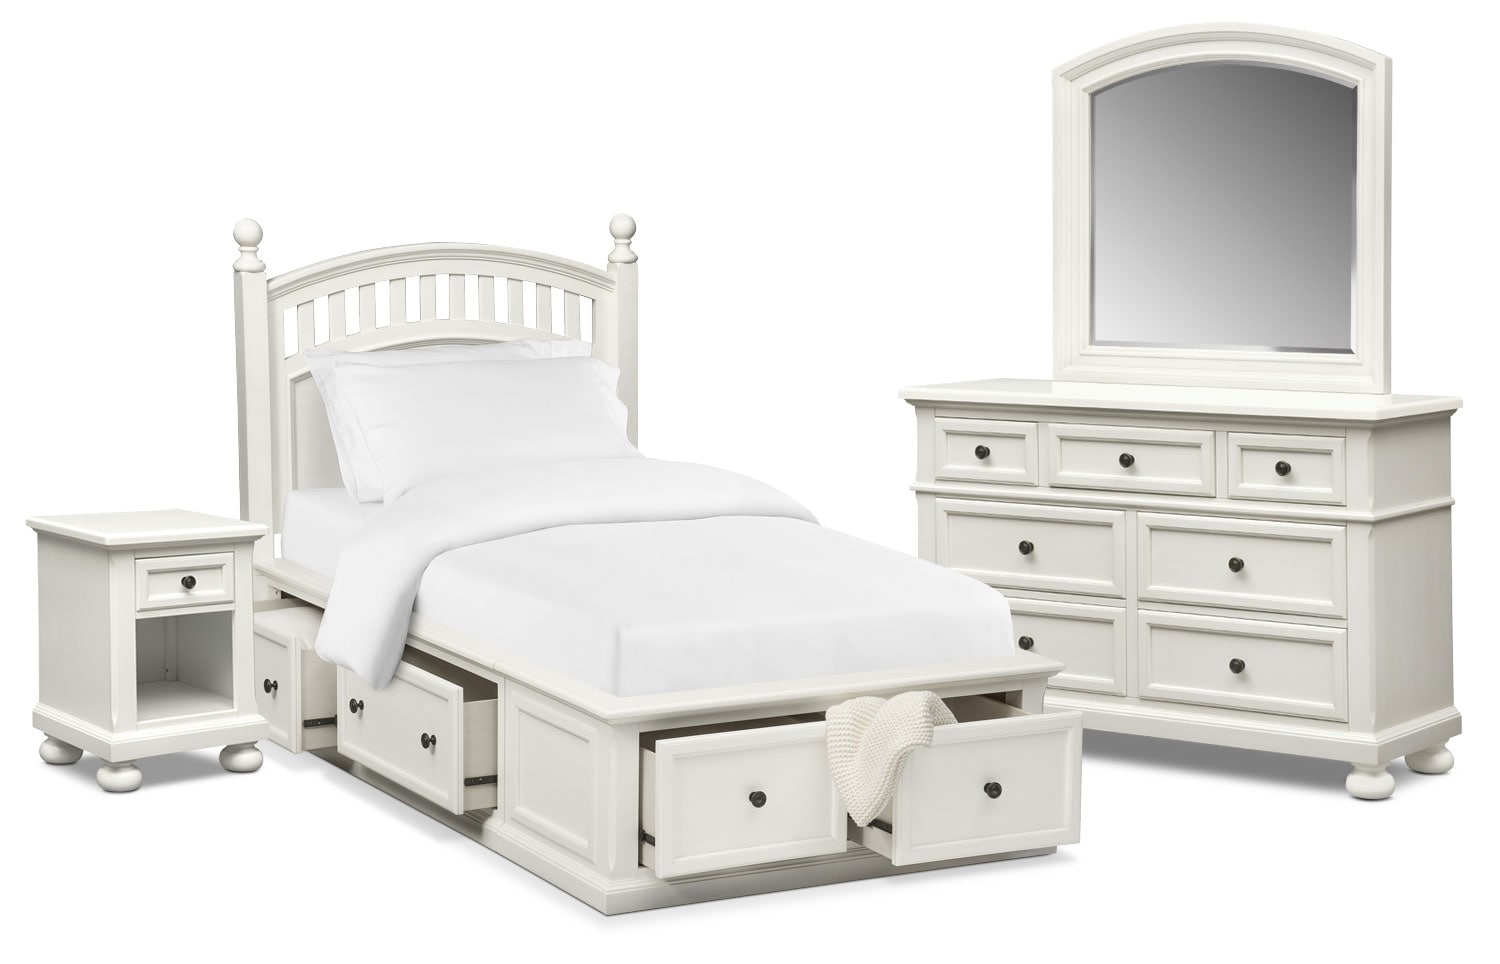 Bedroom Furniture - Hanover Youth 6-Piece Full Poster Bedroom Set with Storage - White